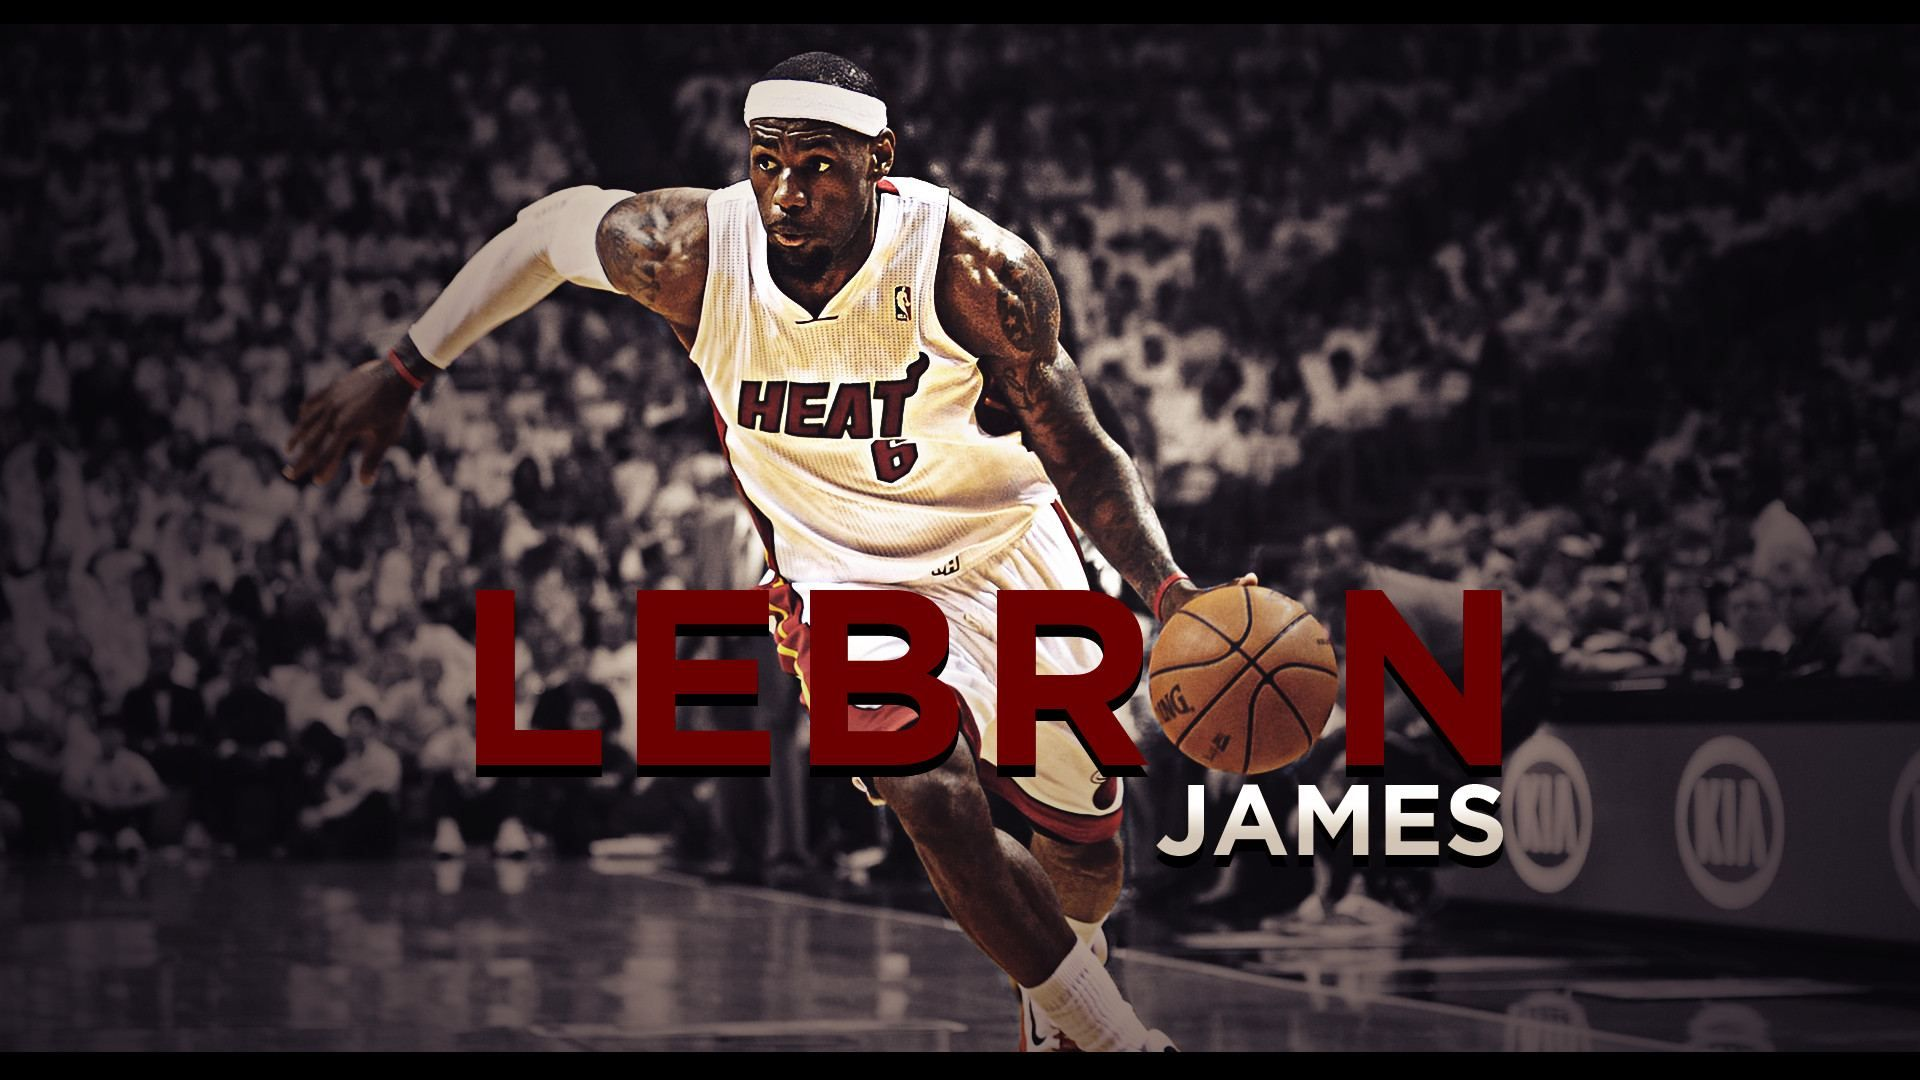 Live Wallpaper Hd Lebron James Wallpapers Lebron James Lebron James Quotes